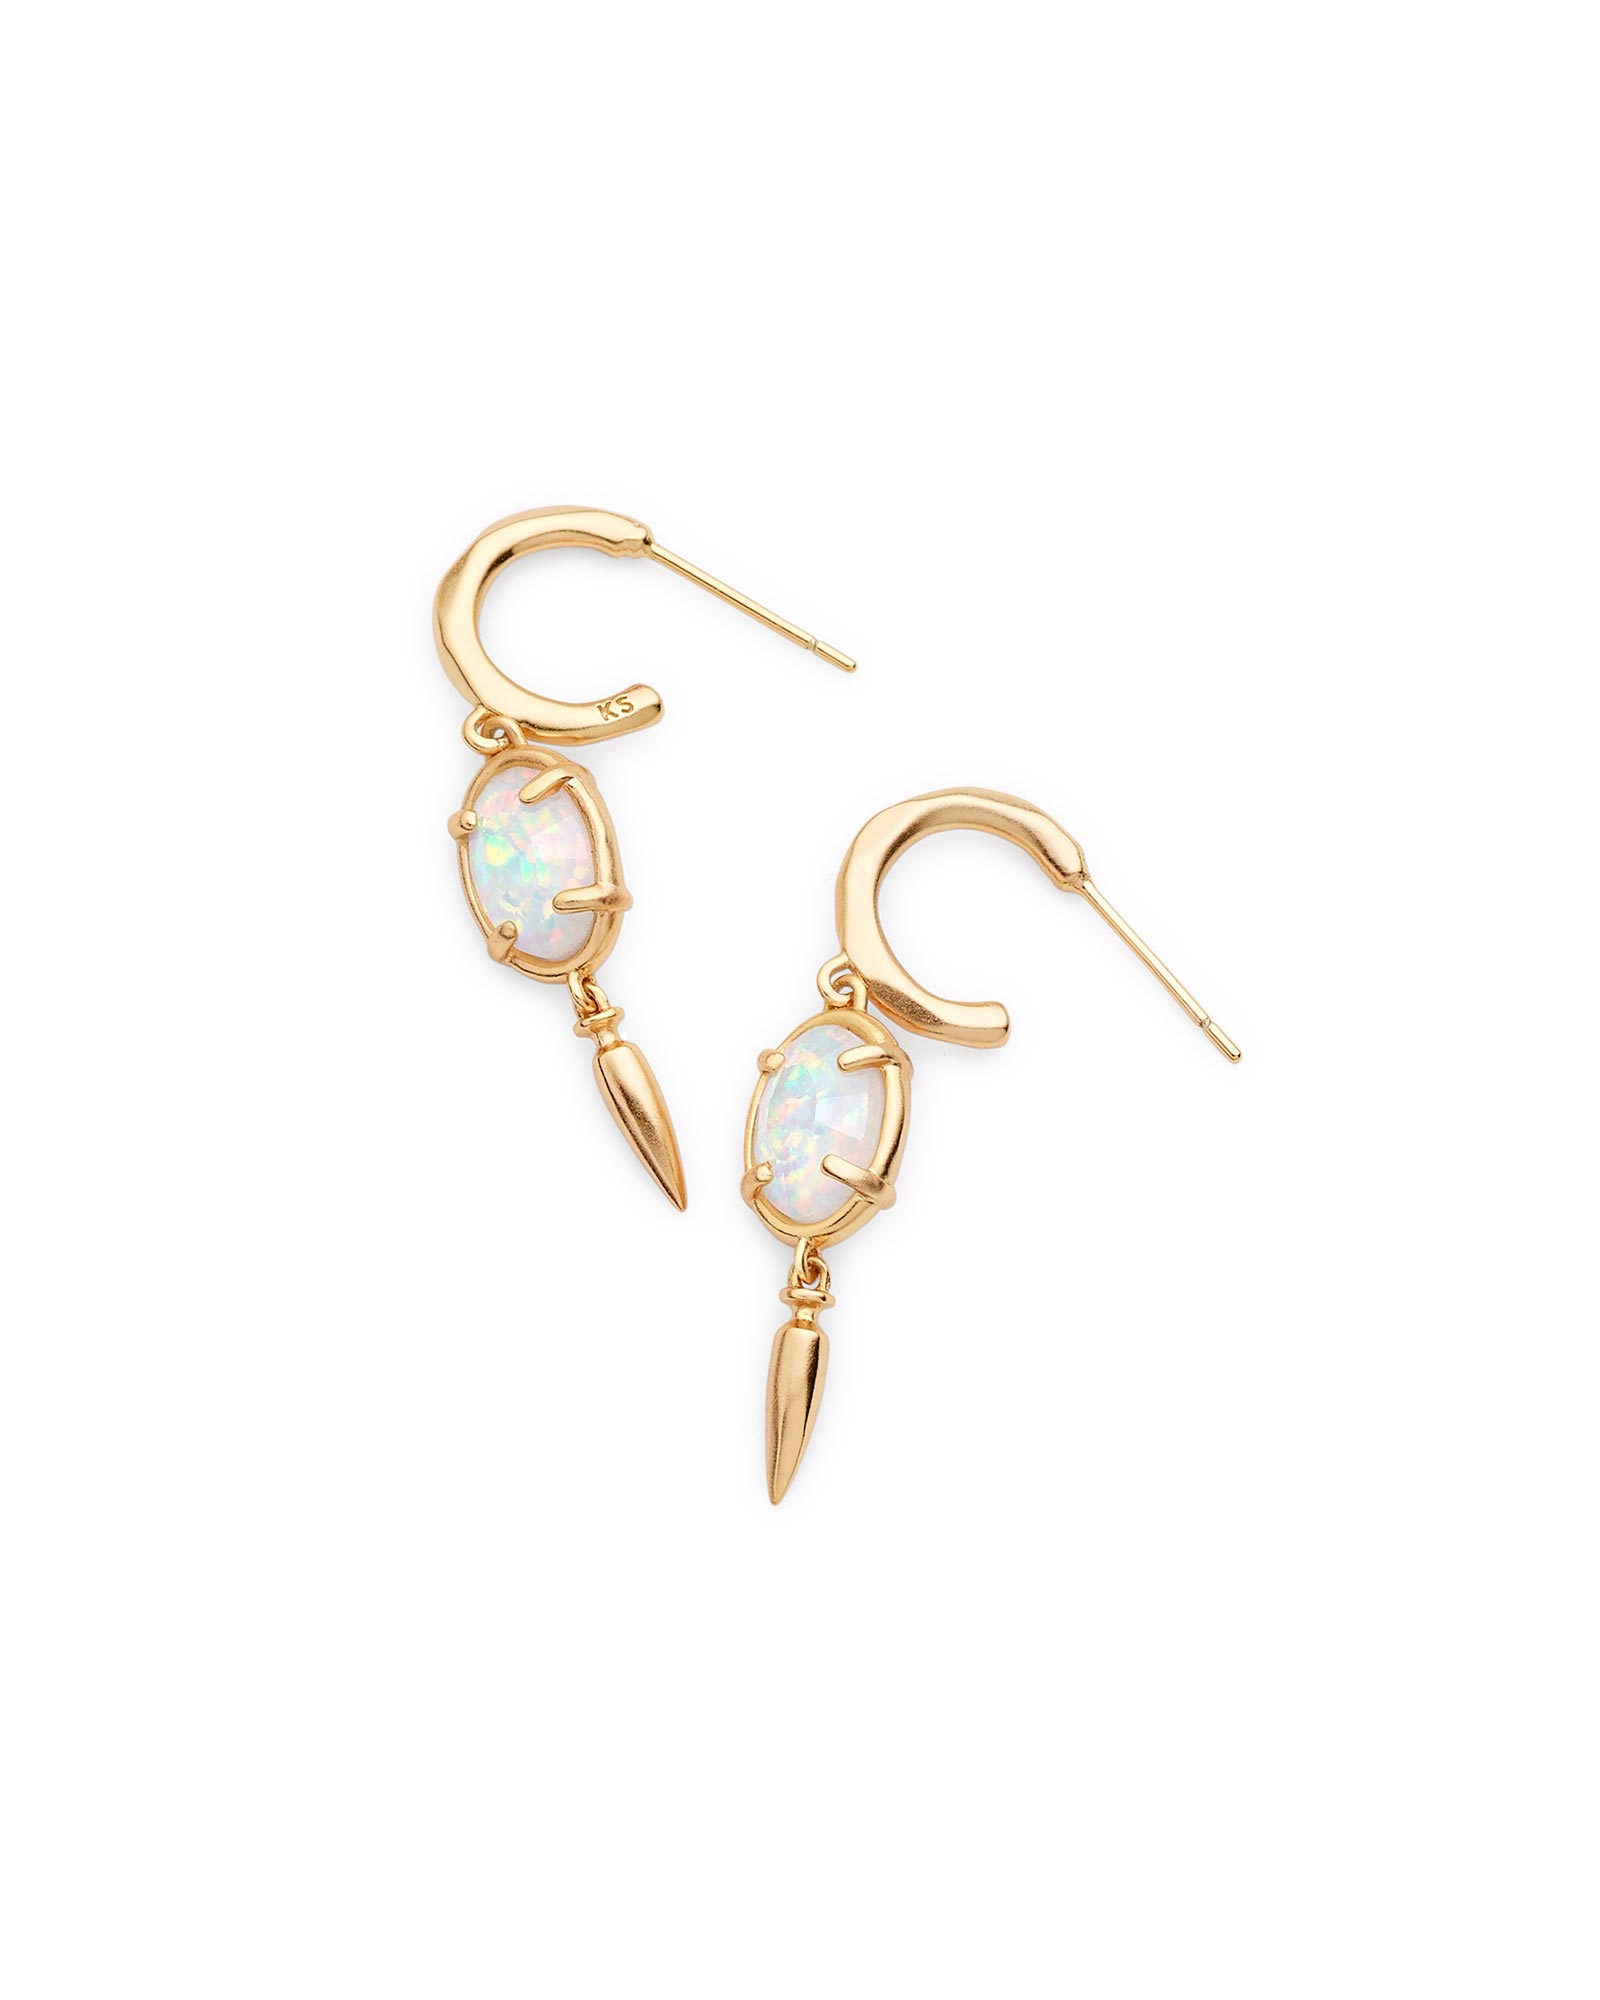 Trixie Drop Earrings in Gold